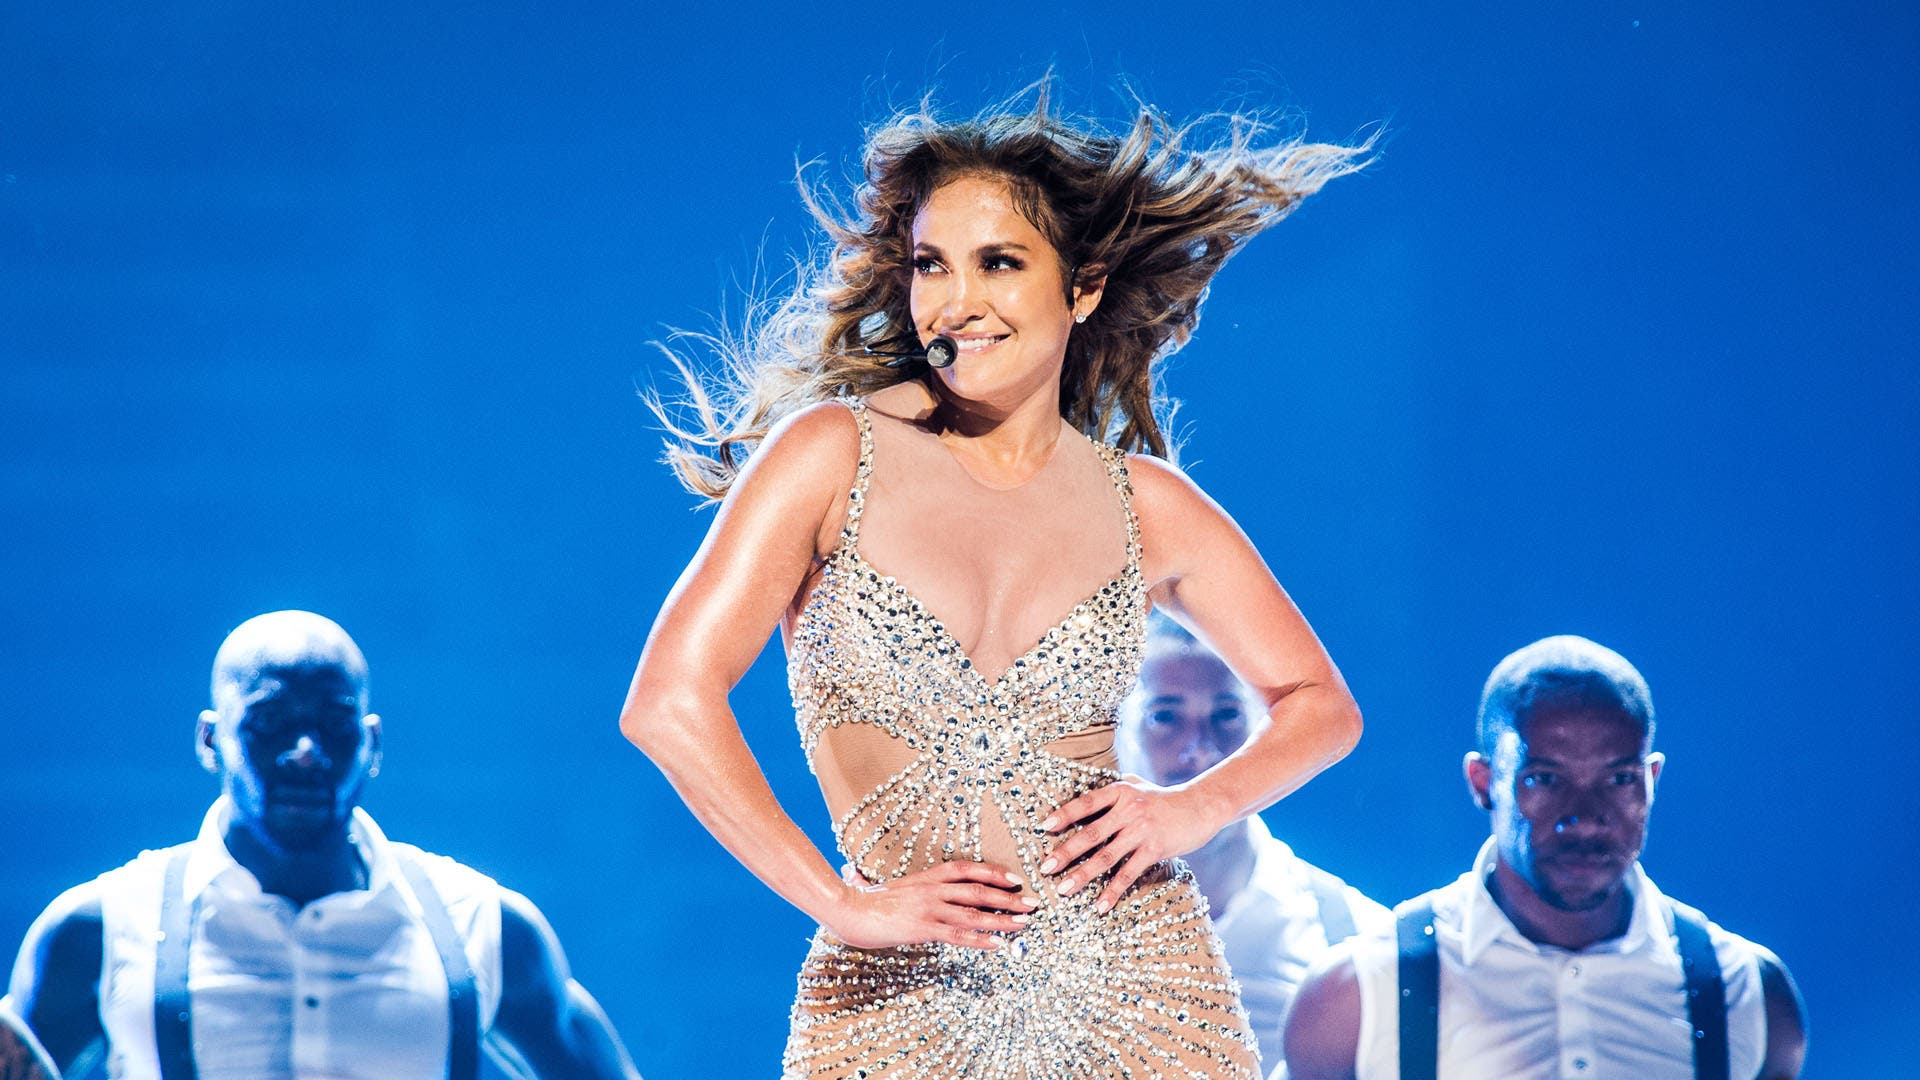 PARIS, FRANCE - OCTOBER 16: Jennifer Lopez performs at Palais Omnisports de Bercy on October 16, 2012 in Paris, France. (Photo by David Wolff - Patrick/WireImage)